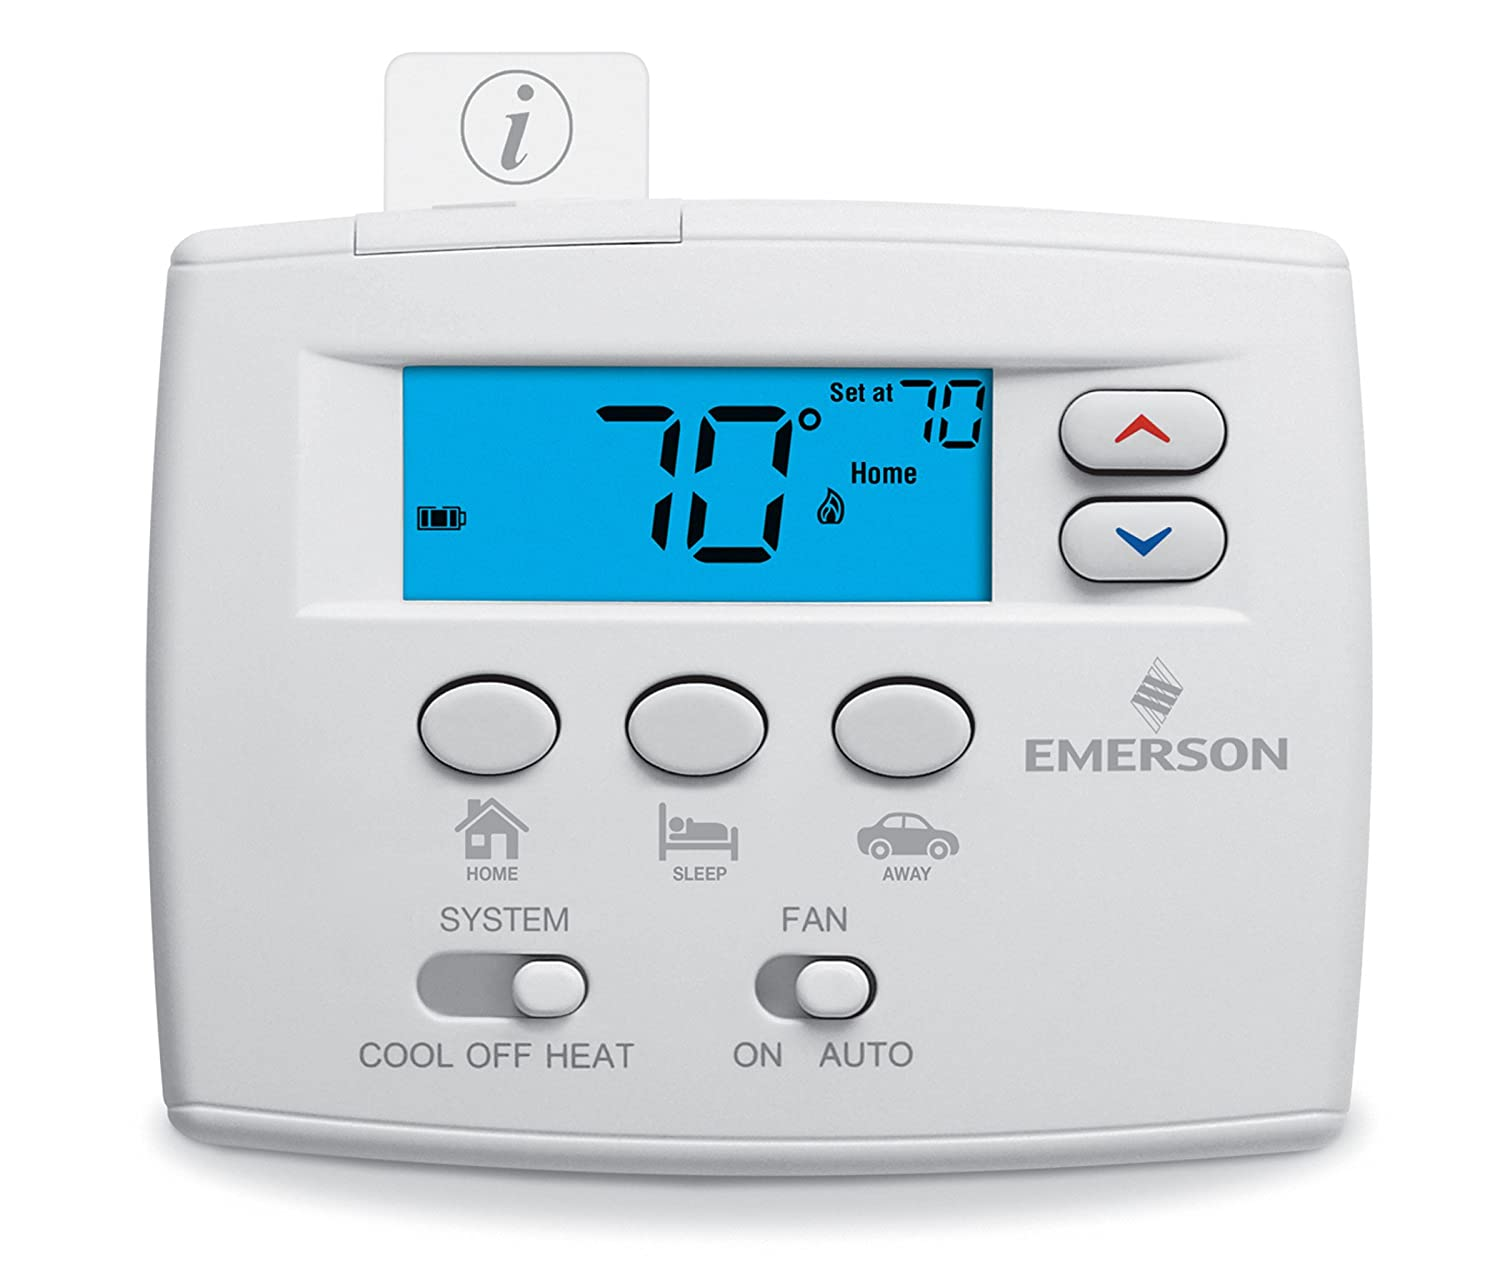 Emerson 1F86EZ-0251 Non-Programmable Thermostat - Programmable Household  Thermostats - Amazon.com